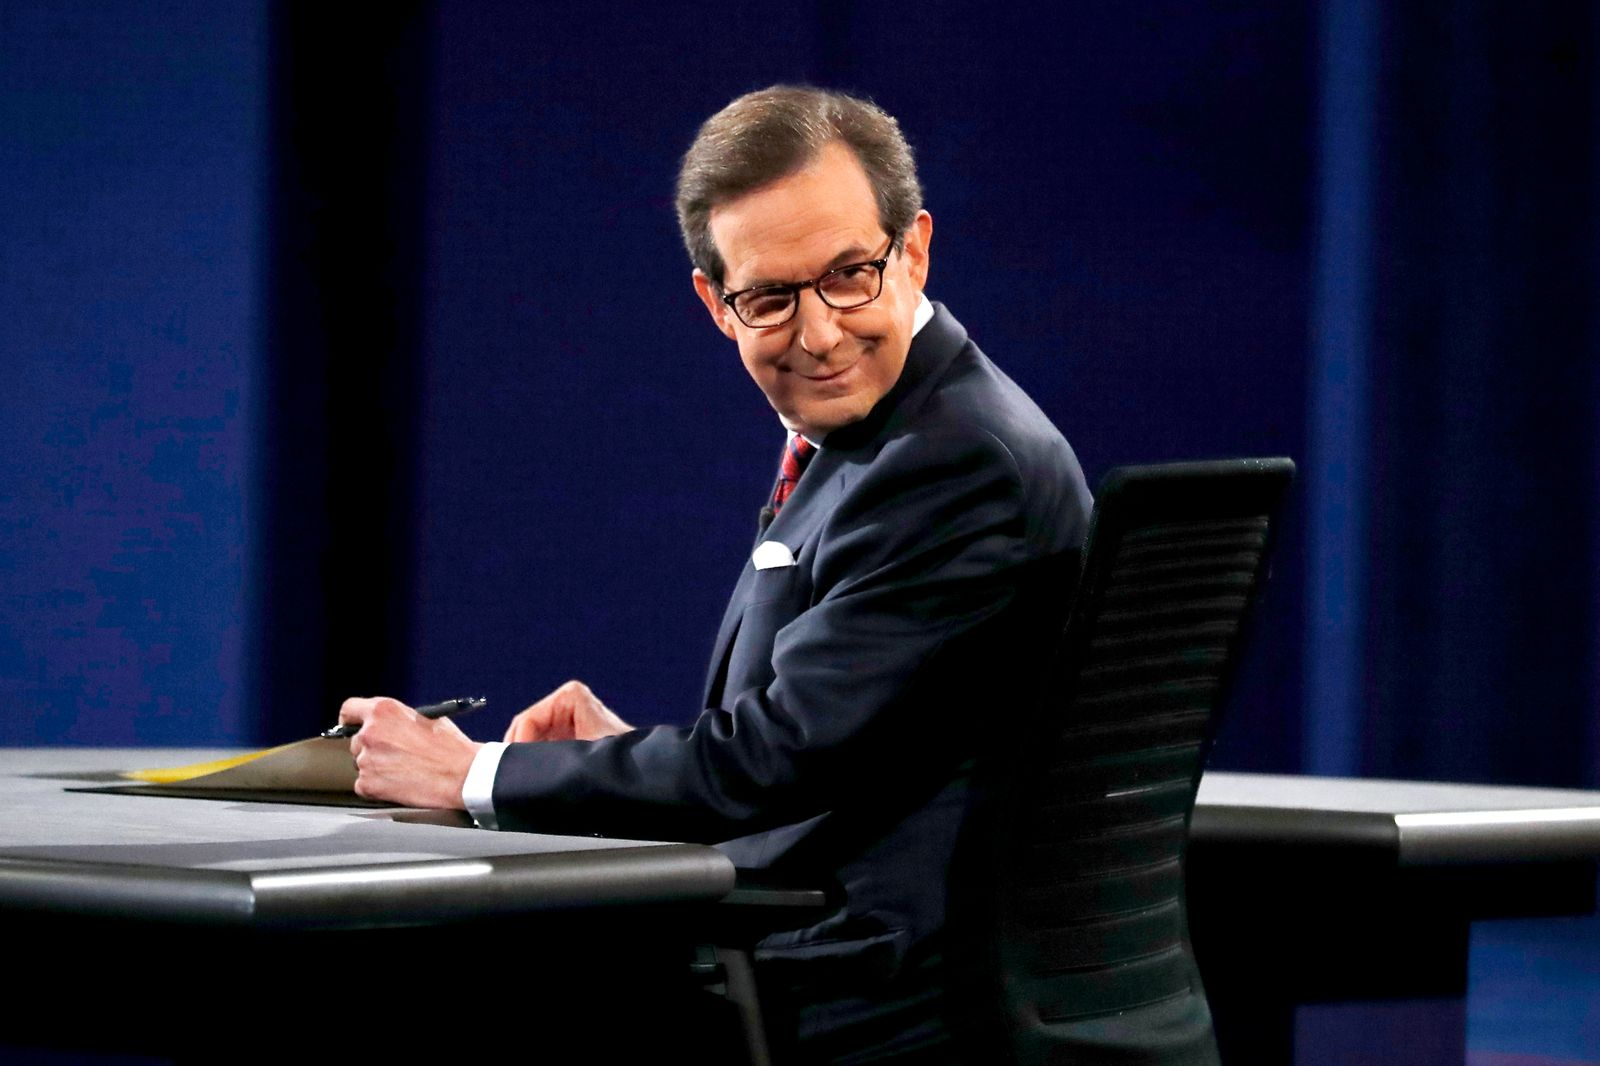 Debate moderator Chris Wallace smiles back at the audiencee before Trump and Clinton's third and final 2016 presidential campaign debate at UNLV in Las Vegas